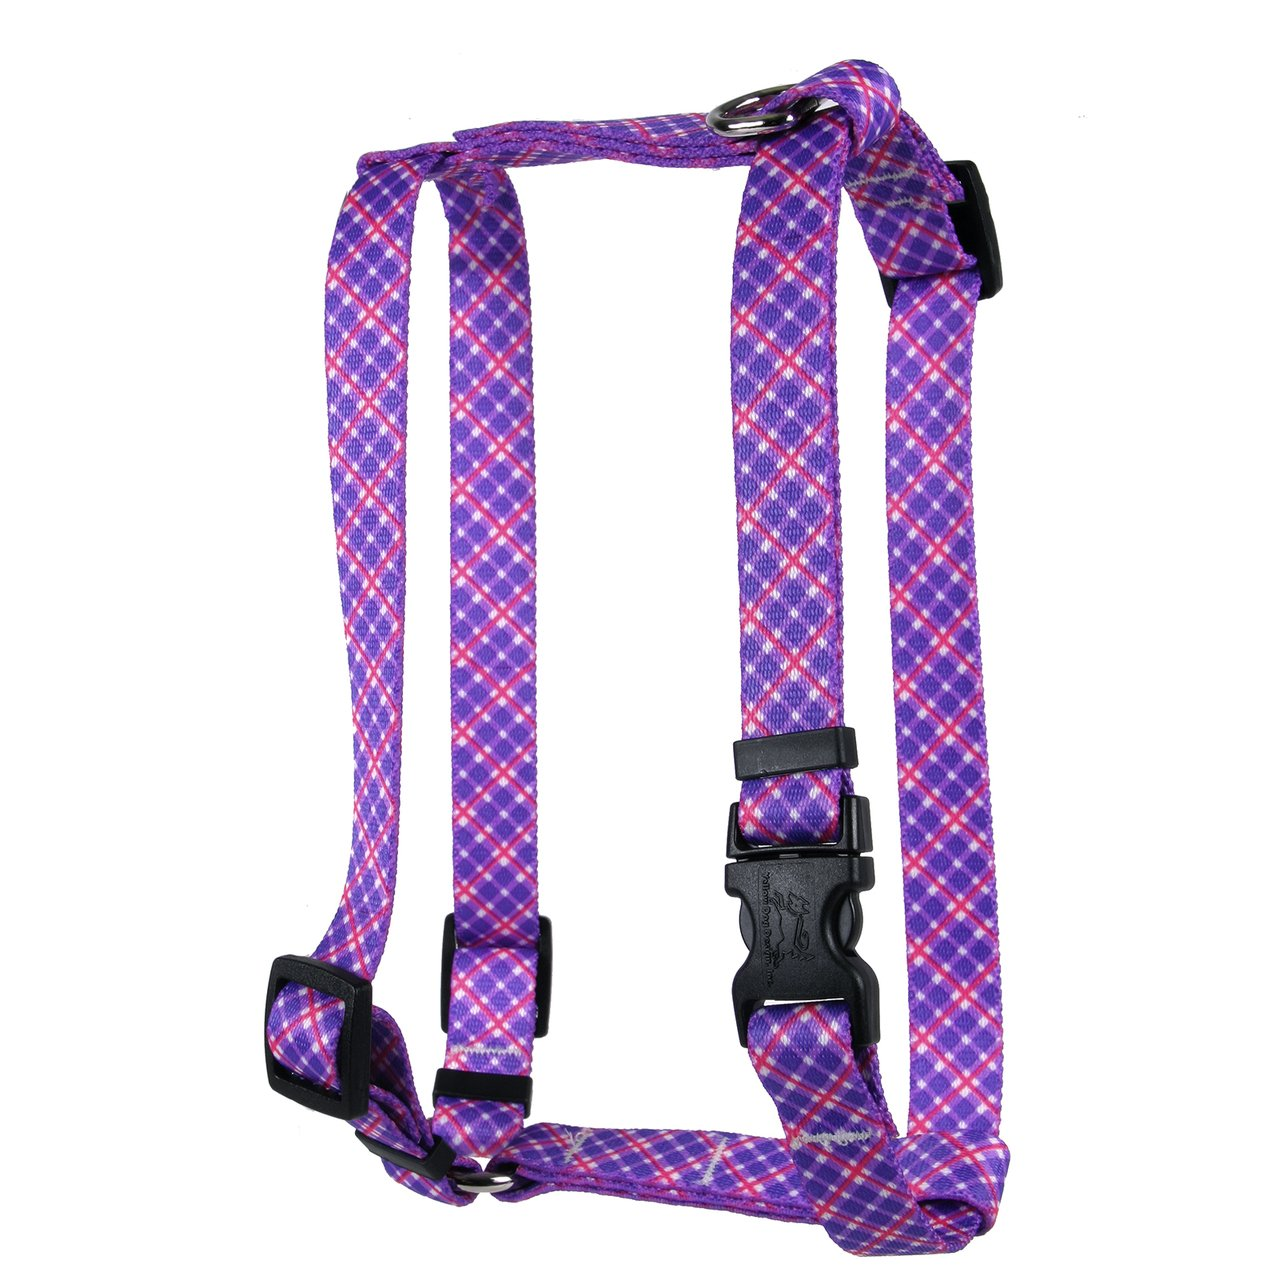 Yellow Dog Design Purple Pink Diagonal Plaid Roman H Dog Harness, X-Large-1'' Wide fits Chest of 28 to 36''